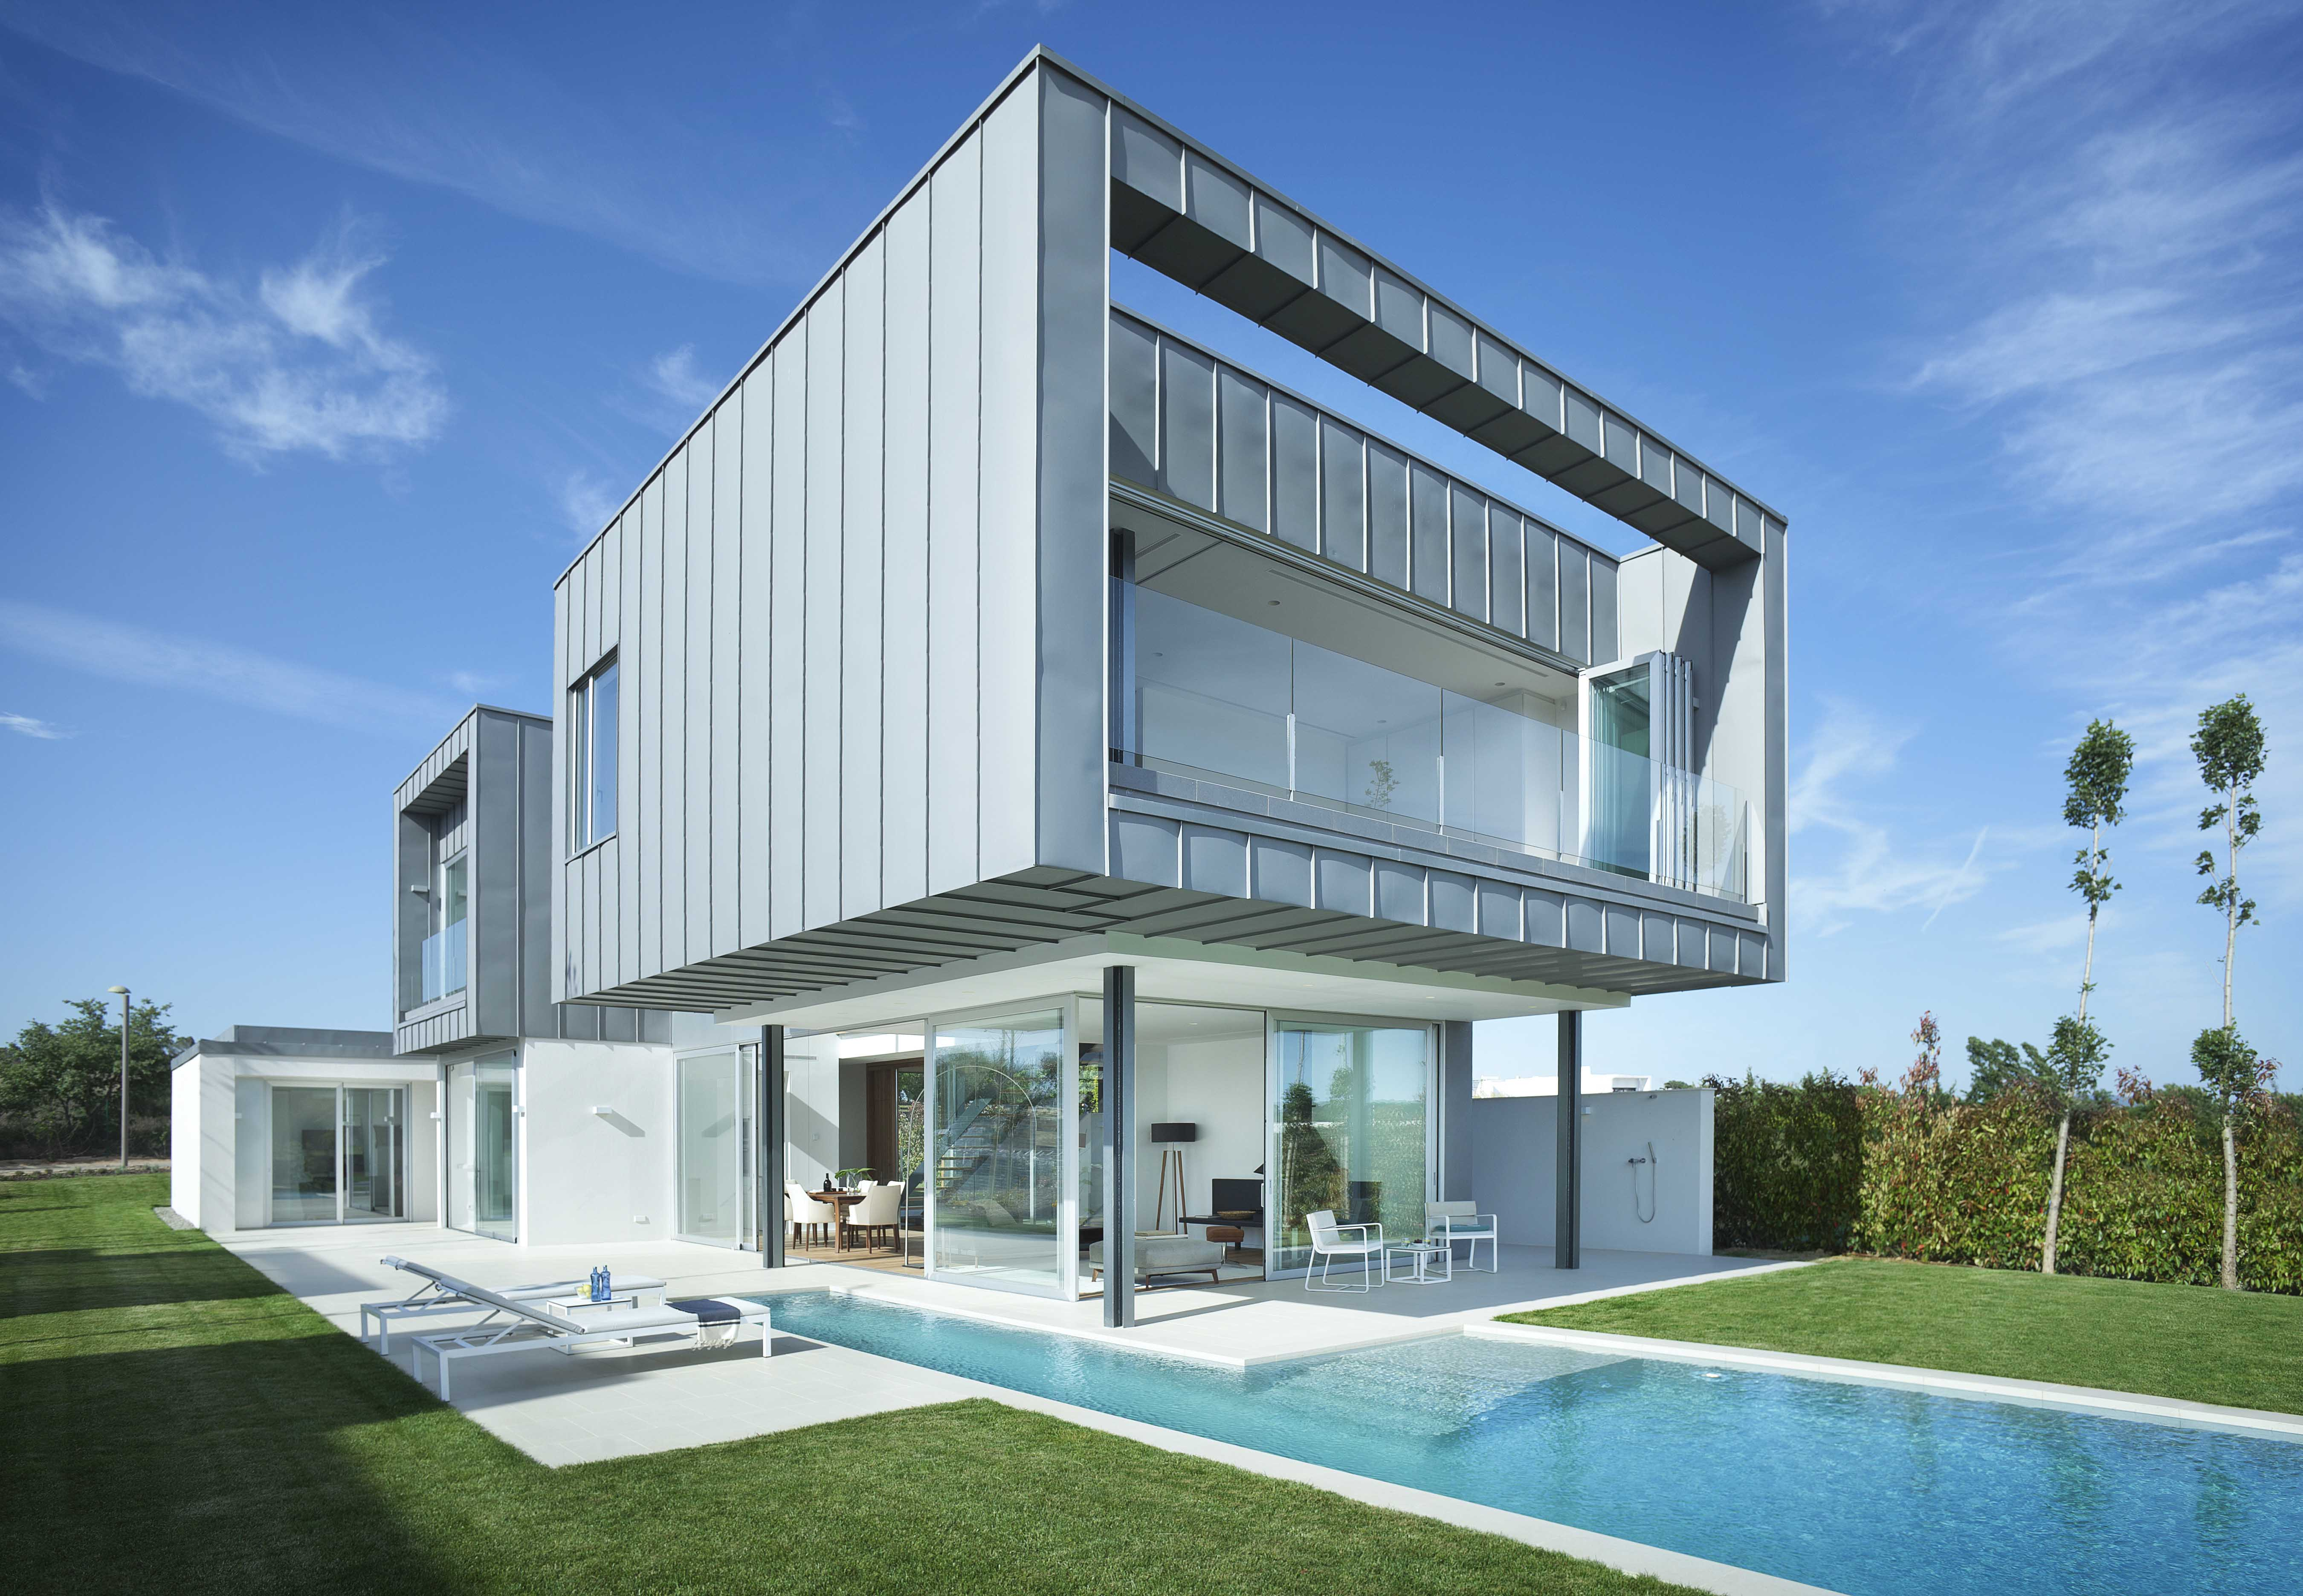 Single Family Home for Sale at Designer Villa Other Cities Baix Emporda, Barcelona 17001 Spain